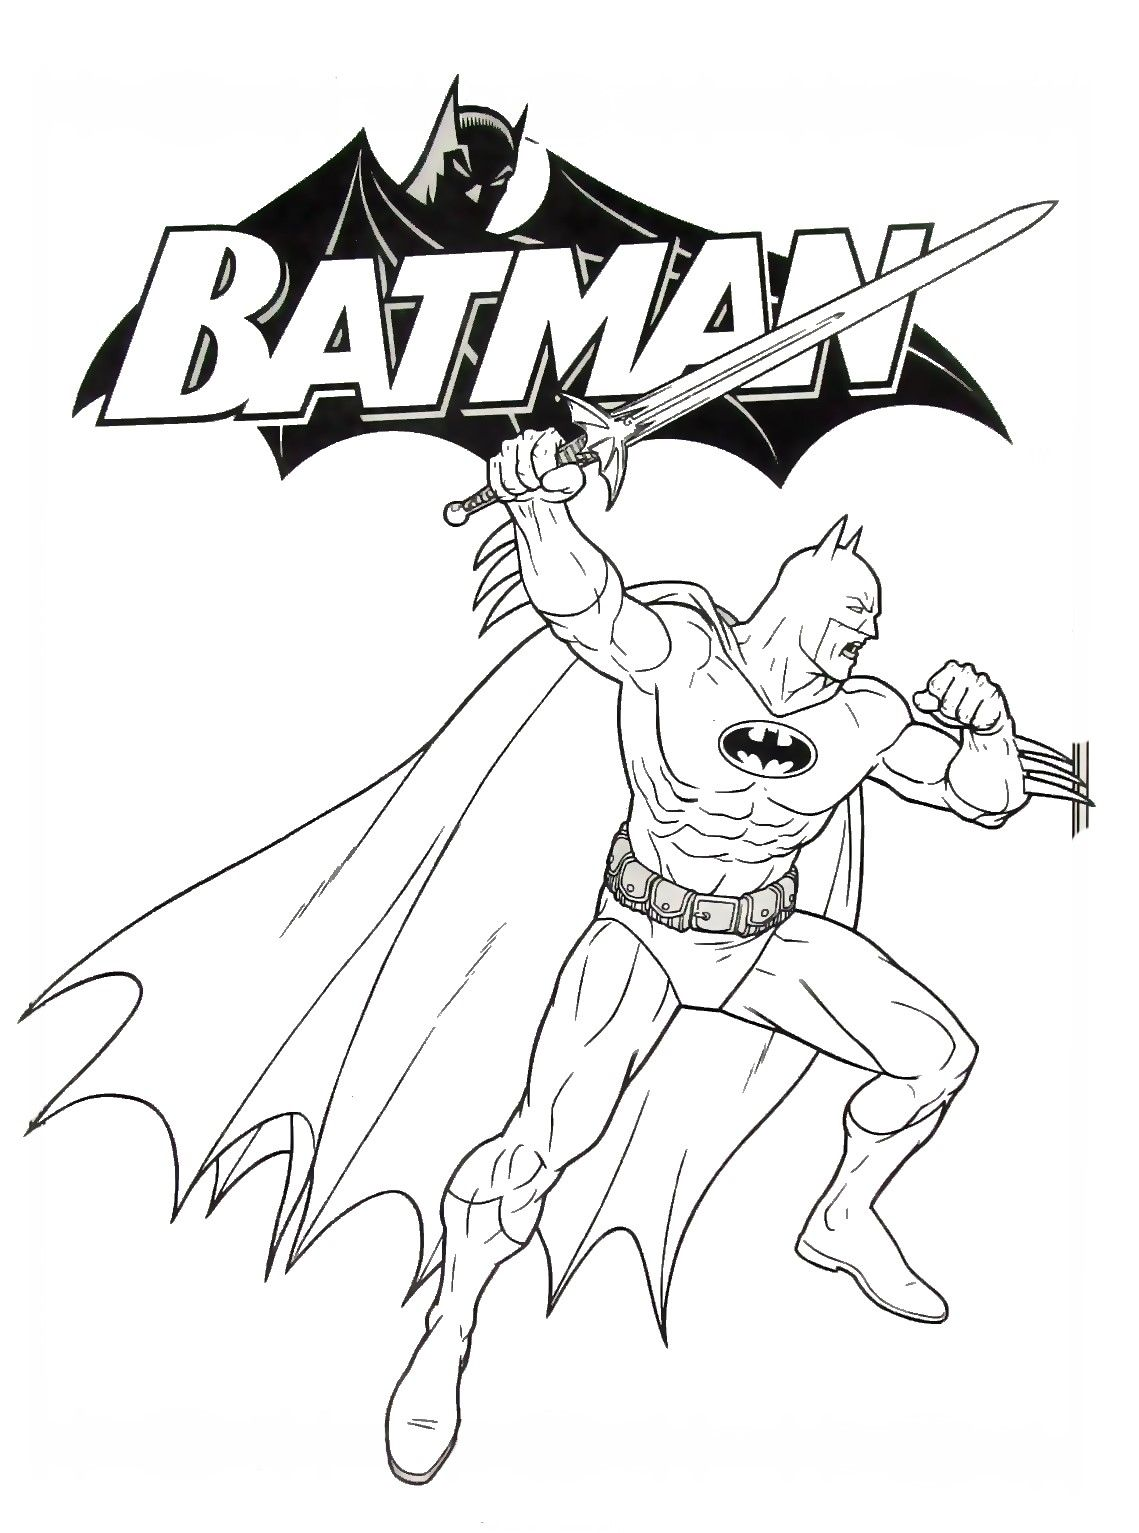 Batman With Sword Coloring Book Page Printable Coloring Book